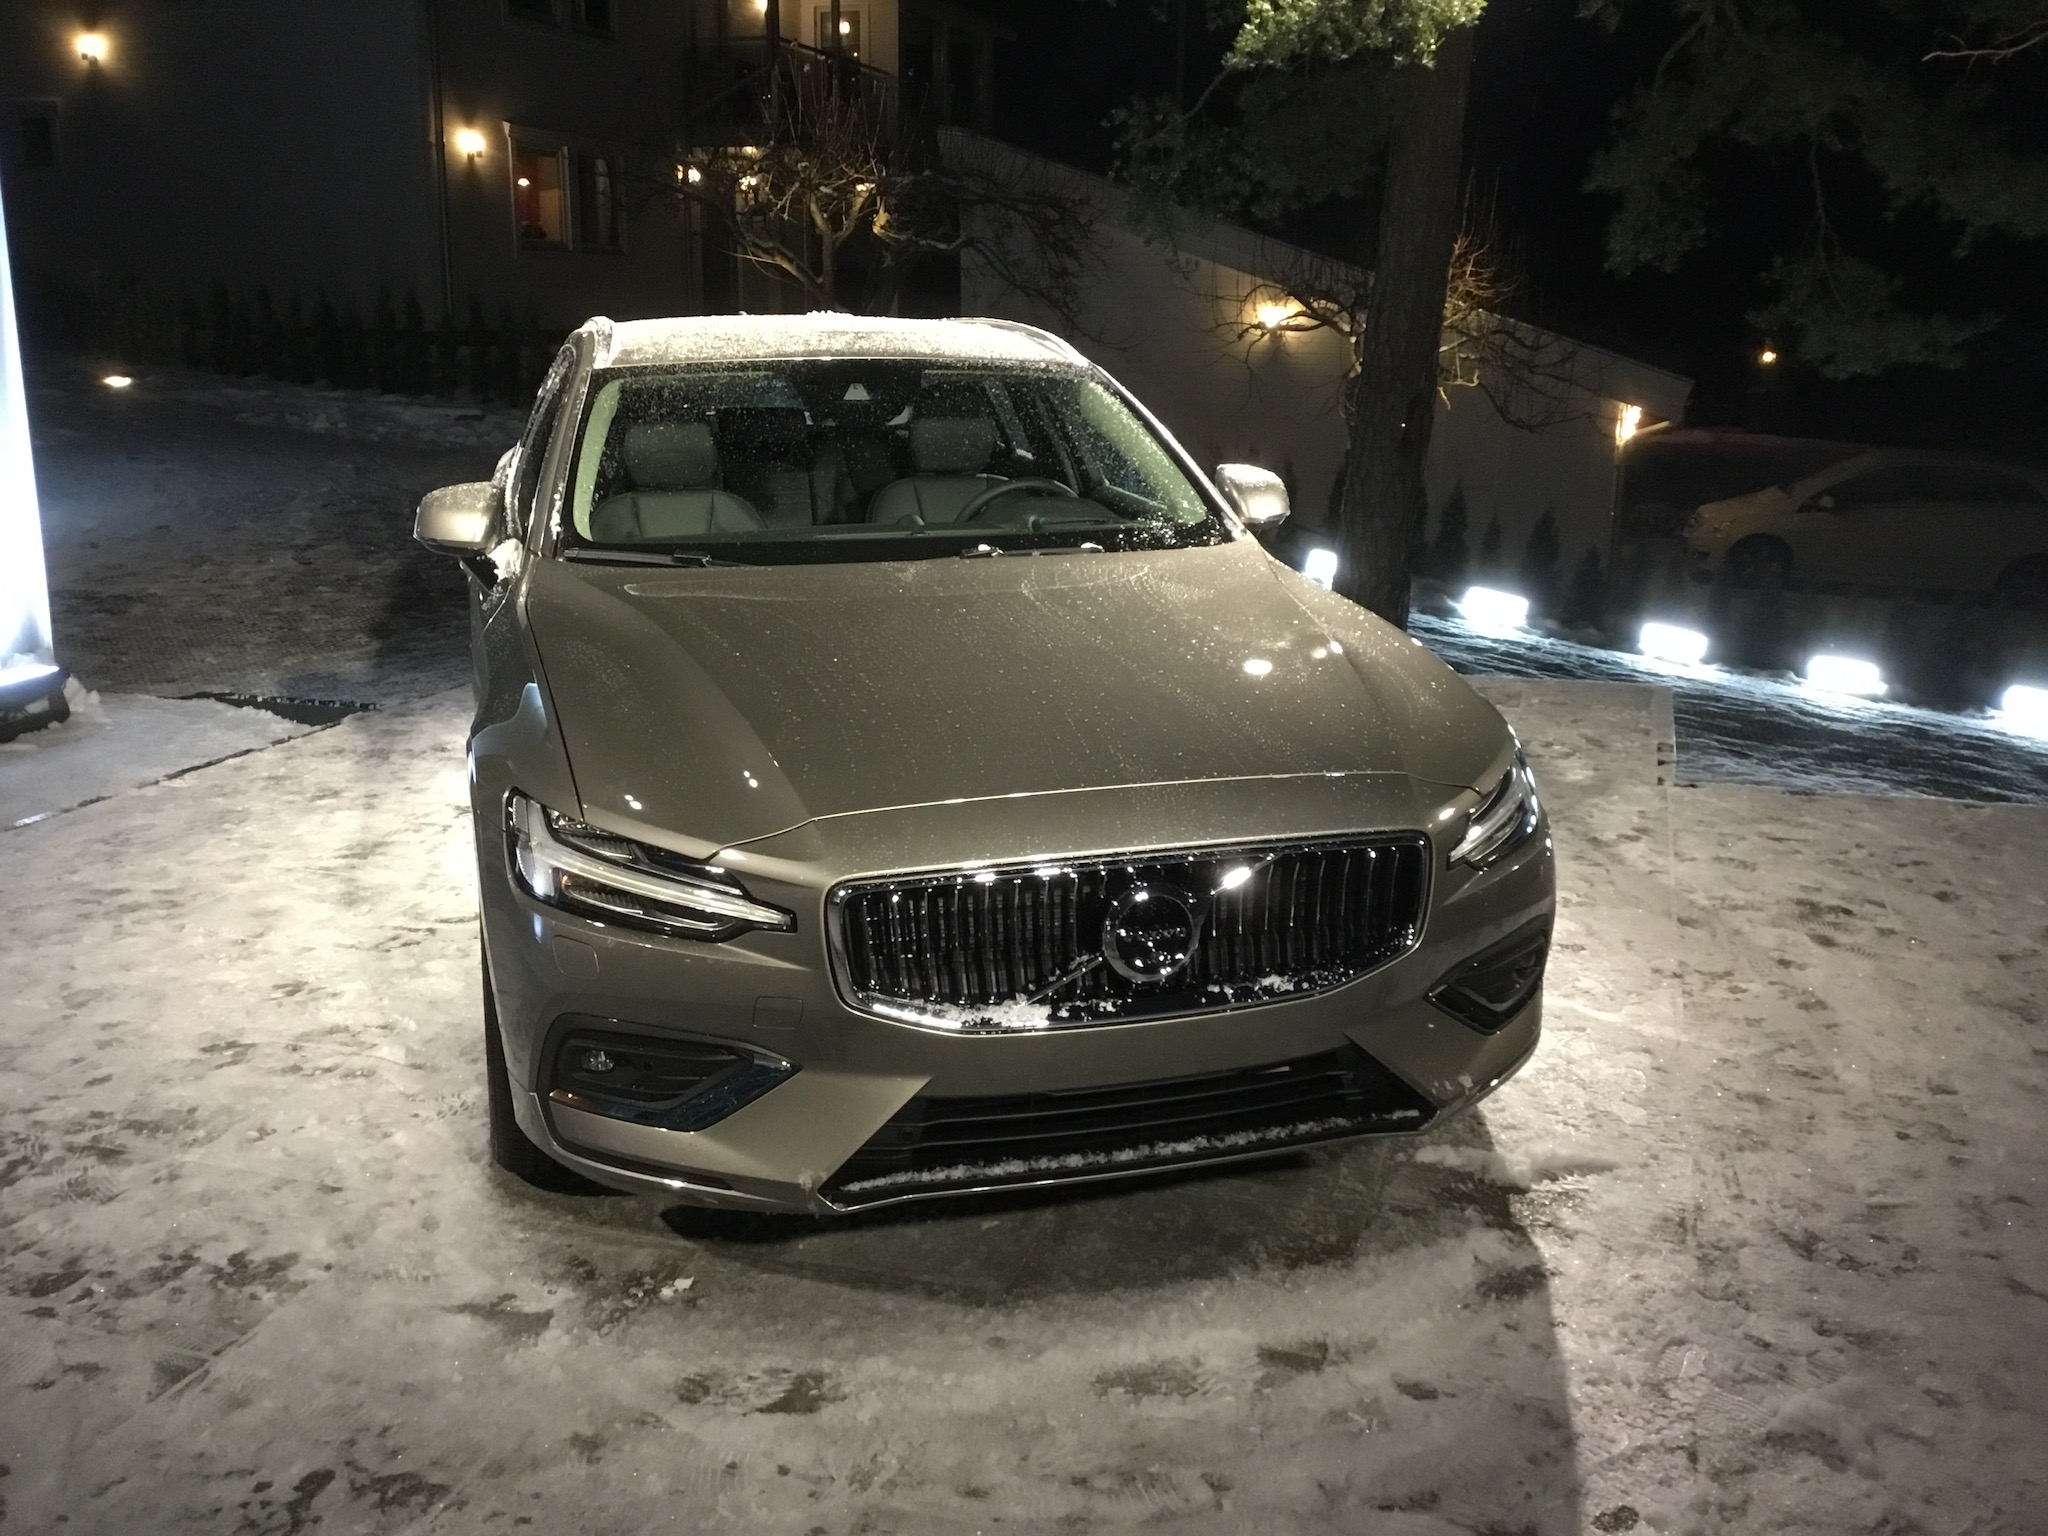 The V60 sparkles in the snow.